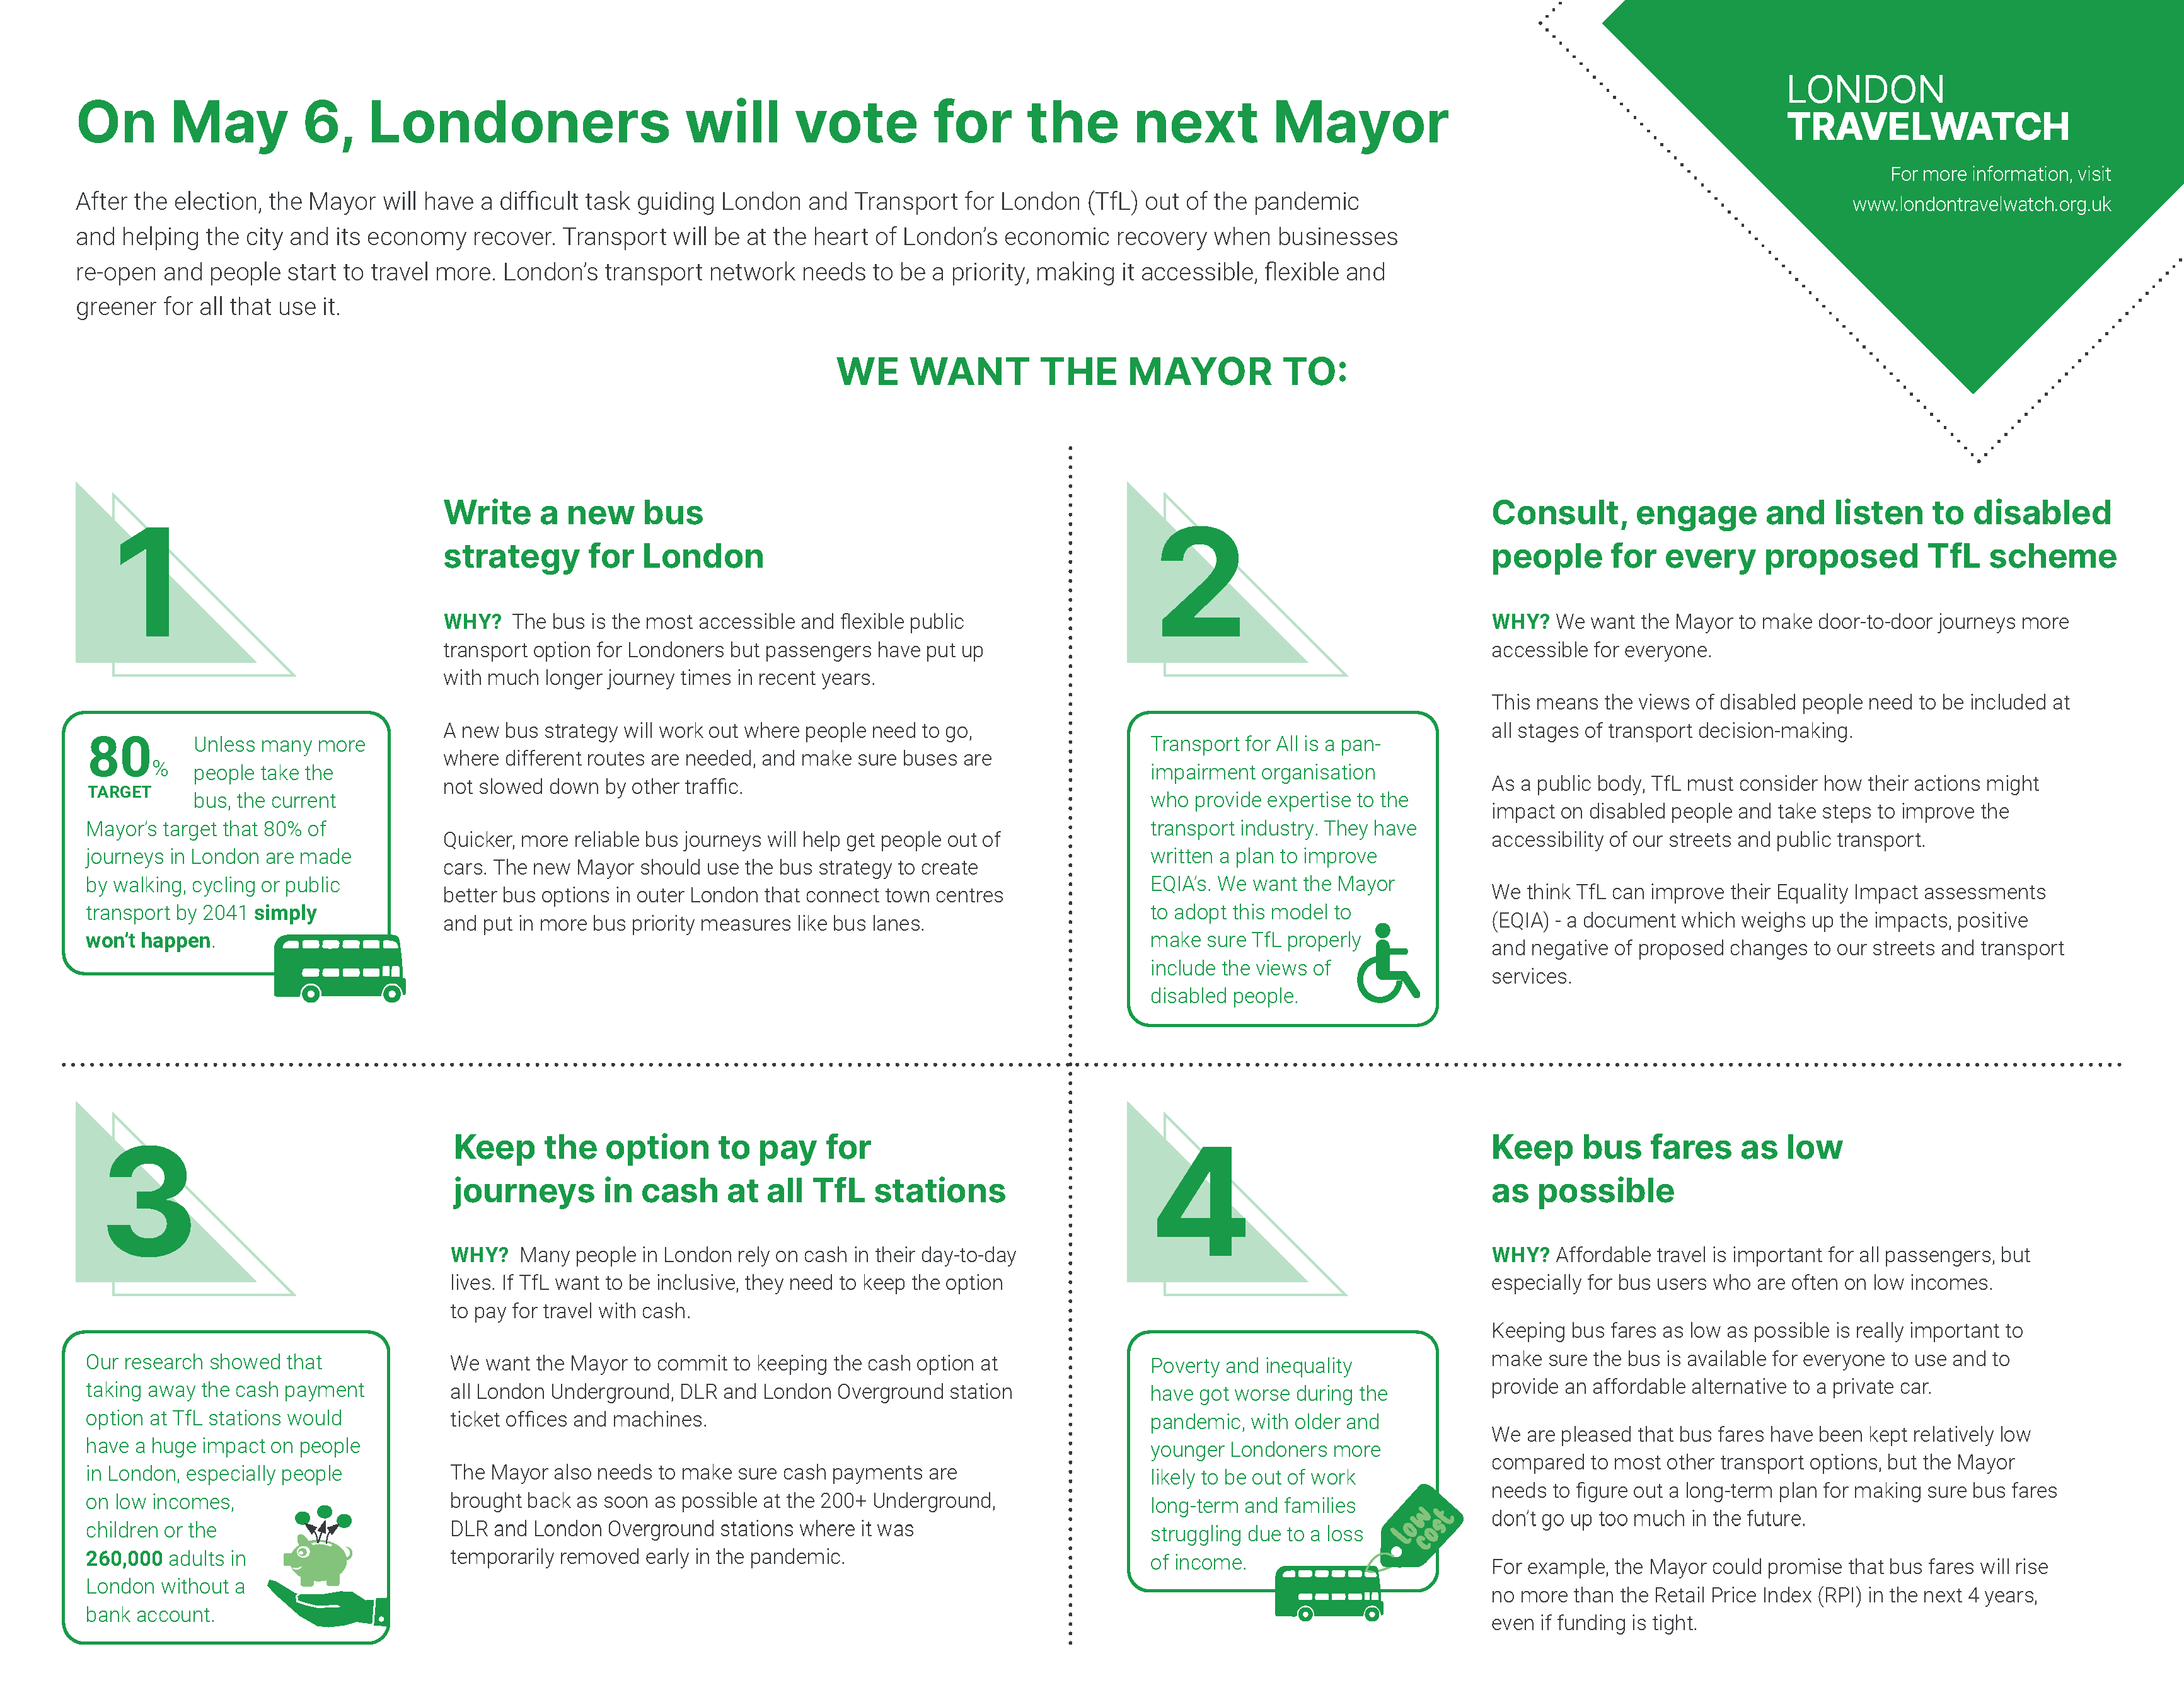 London TravelWatch 4 Mayoral asks